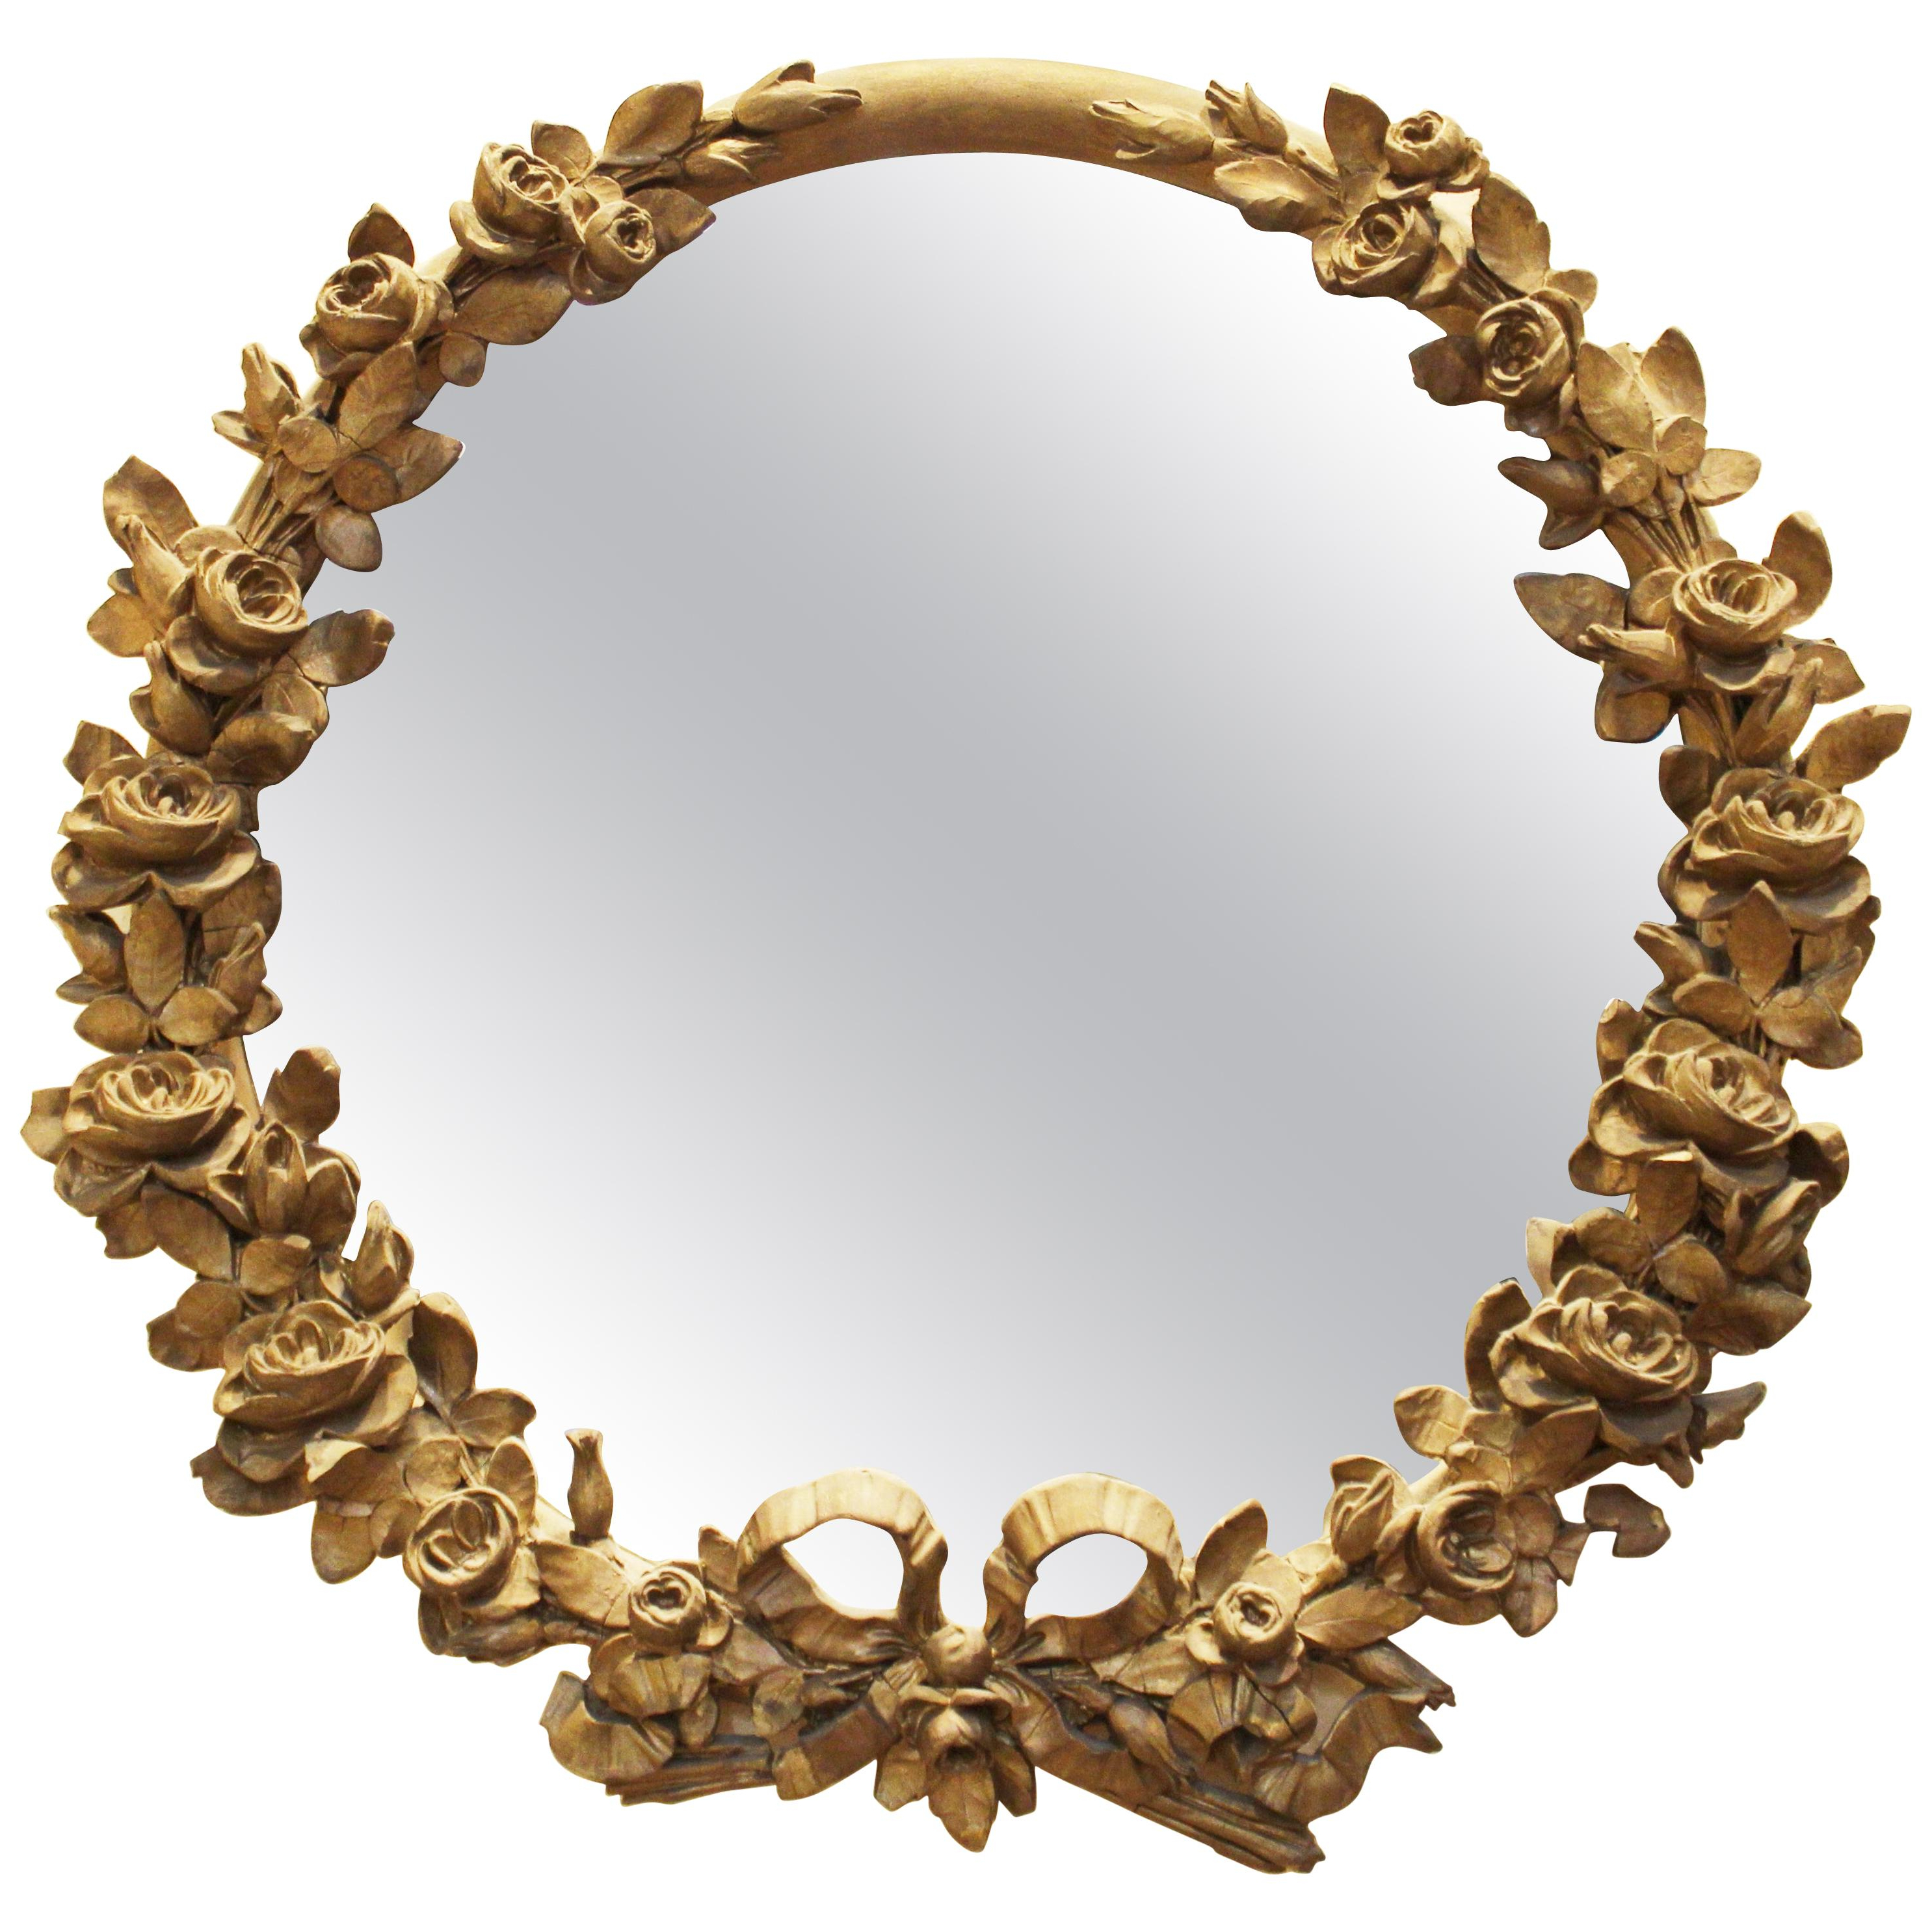 Most Current Antique And Vintage Wall Mirrors – 13,029 For Sale At 1Stdibs For Old Fashioned Wall Mirrors (View 19 of 20)